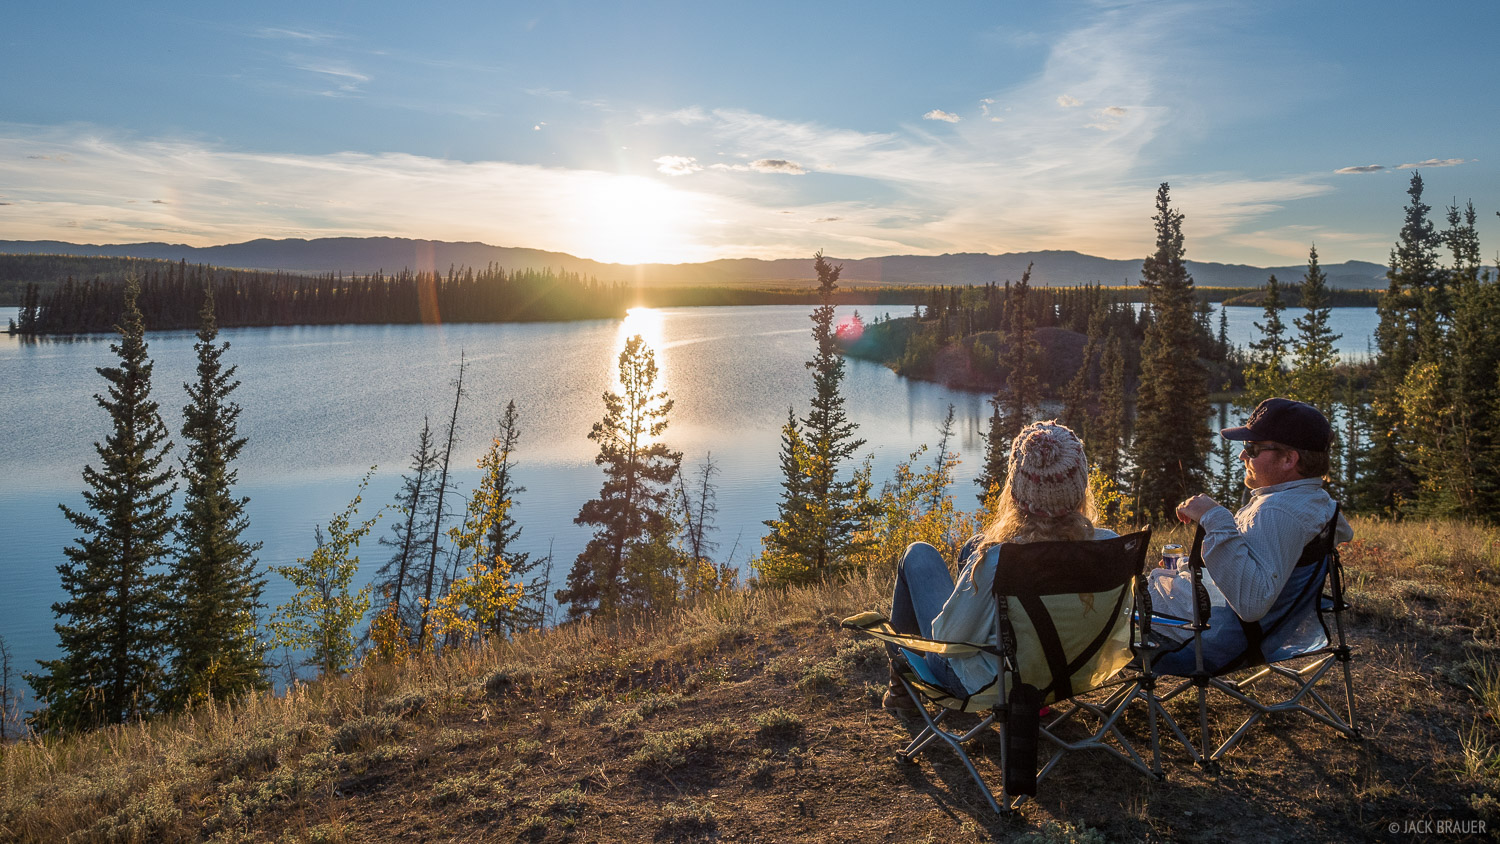 It took five days of solid driving to get from Dawson in the northern Yukon down to our next destination of Jasper in the Canadian...